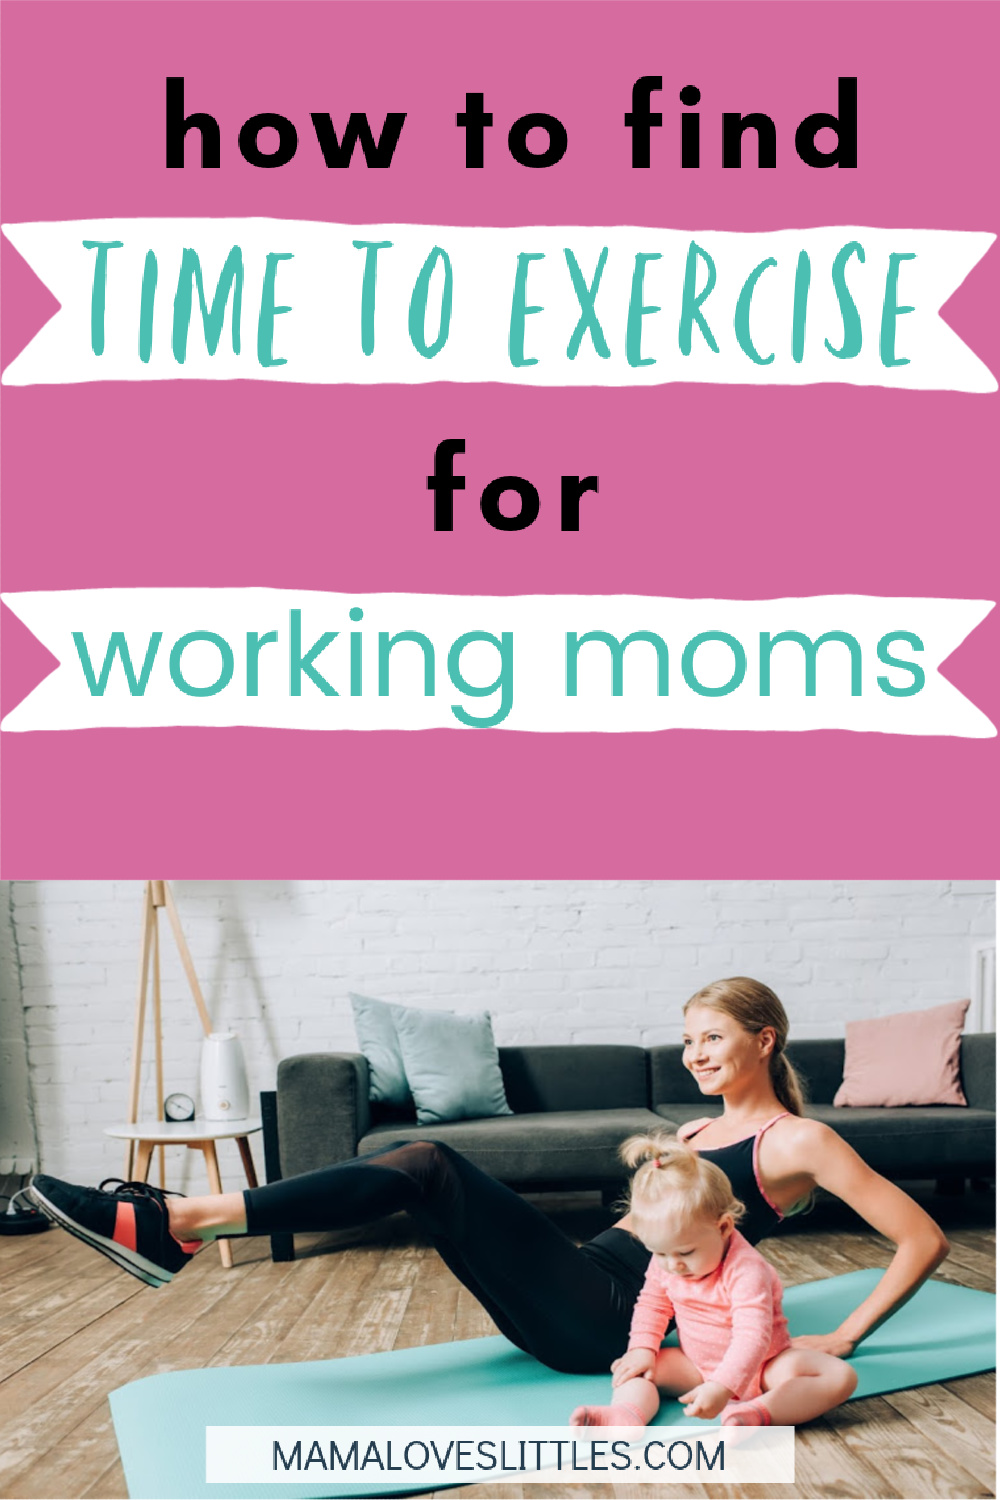 How to find time to exercise for working moms